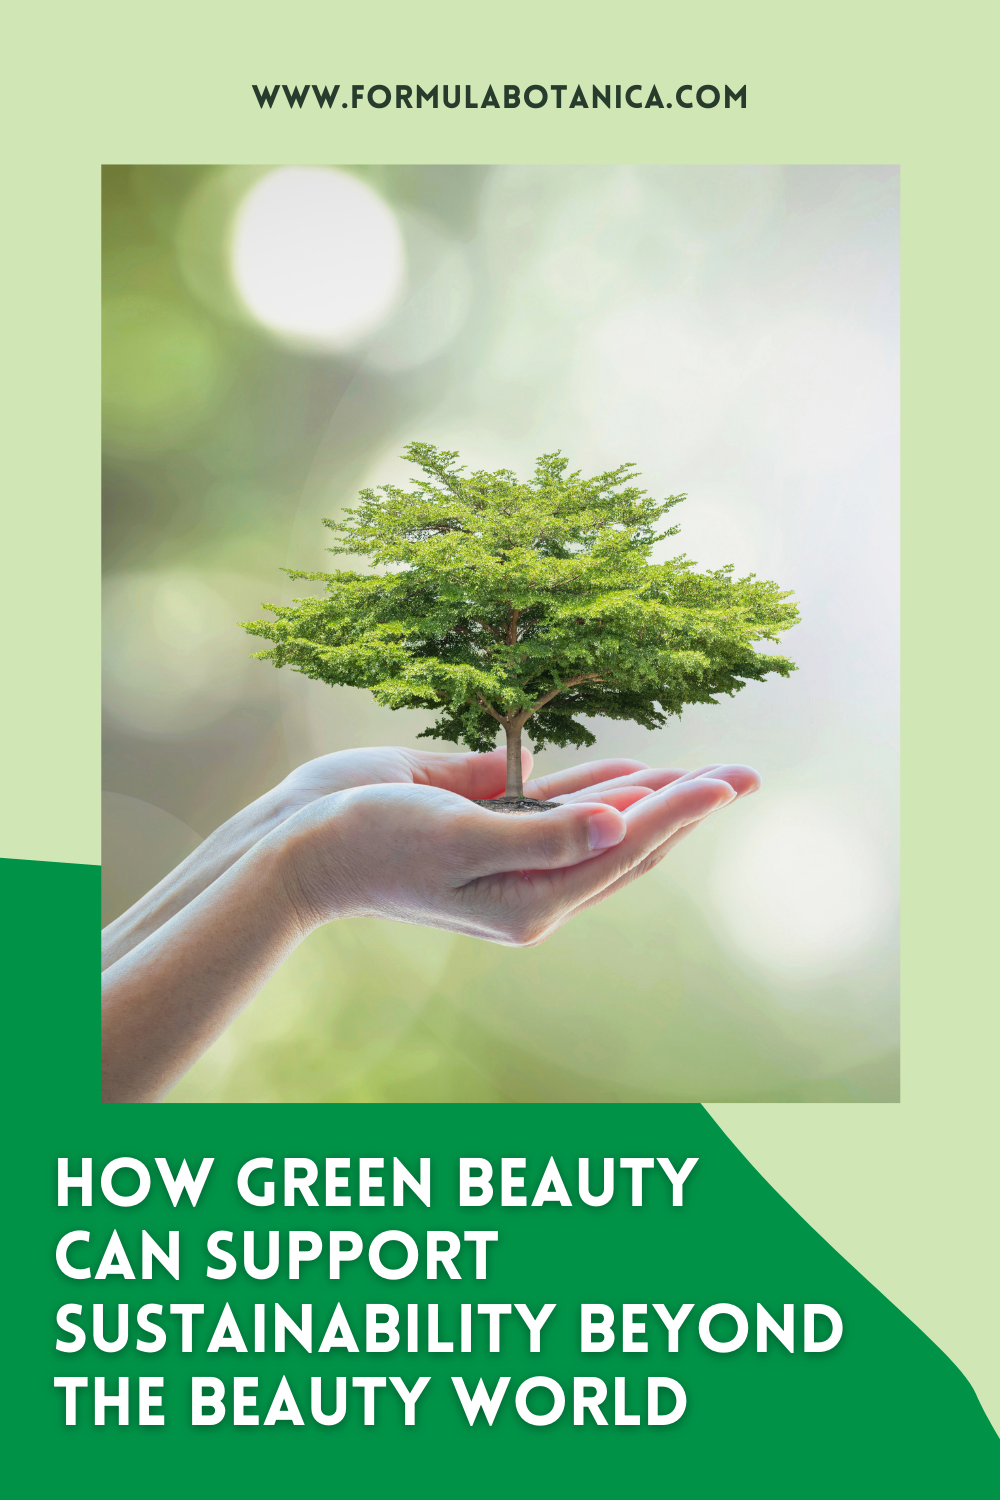 How Green Beauty can support sustainability charities